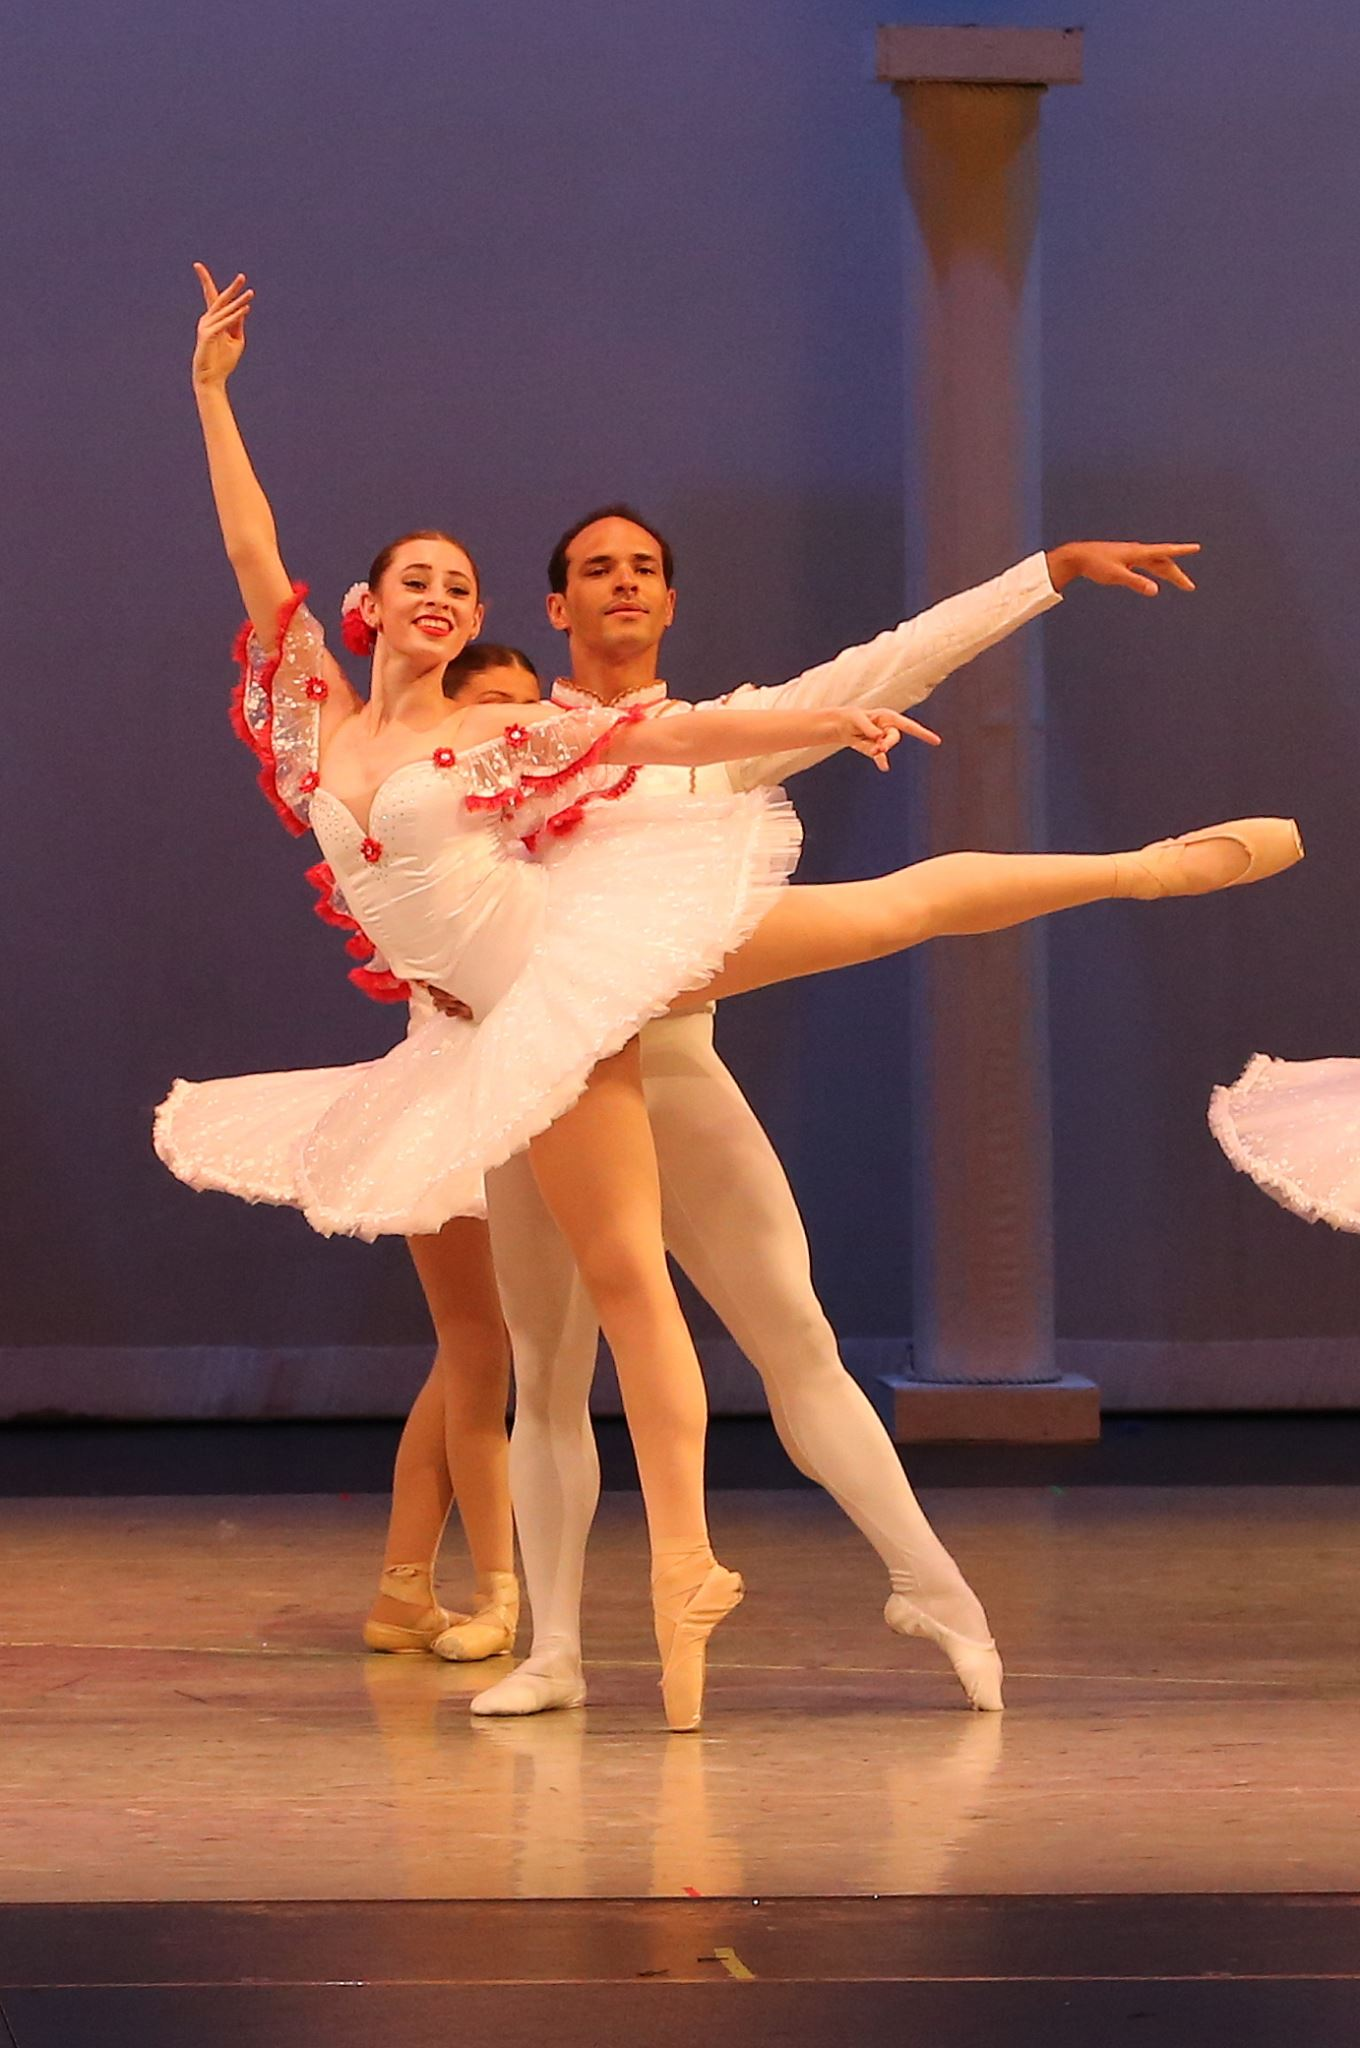 Arts Dance Generation: Don Quixote Suite and other works